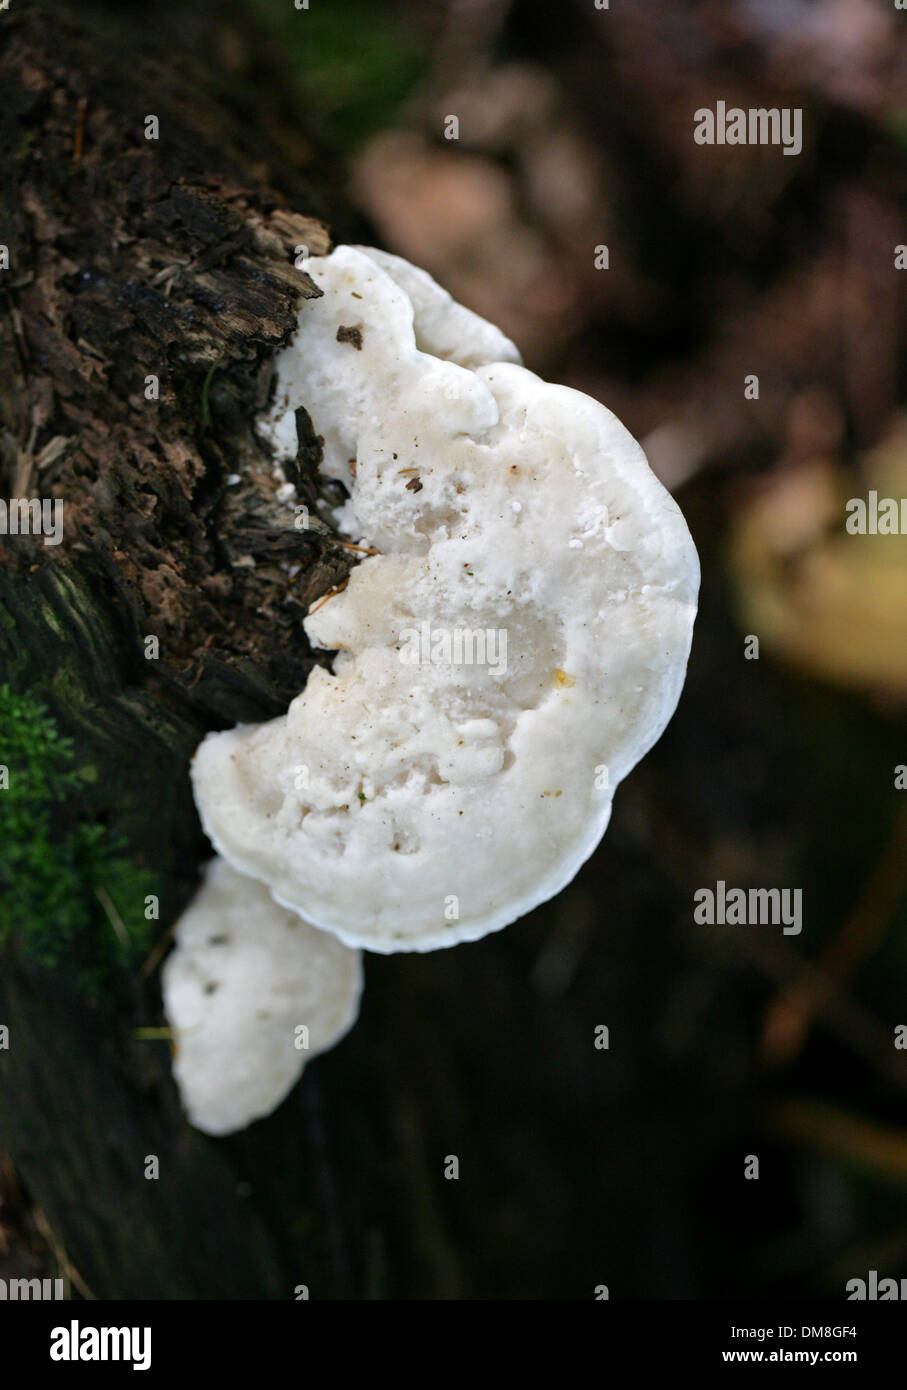 Bitter Bracket, Postia stiptica, Fomitopsidaceae, Syn. Tyromyces stipticus. A White Bracket Fungus that Grows on Dead Conifers. - Stock Image